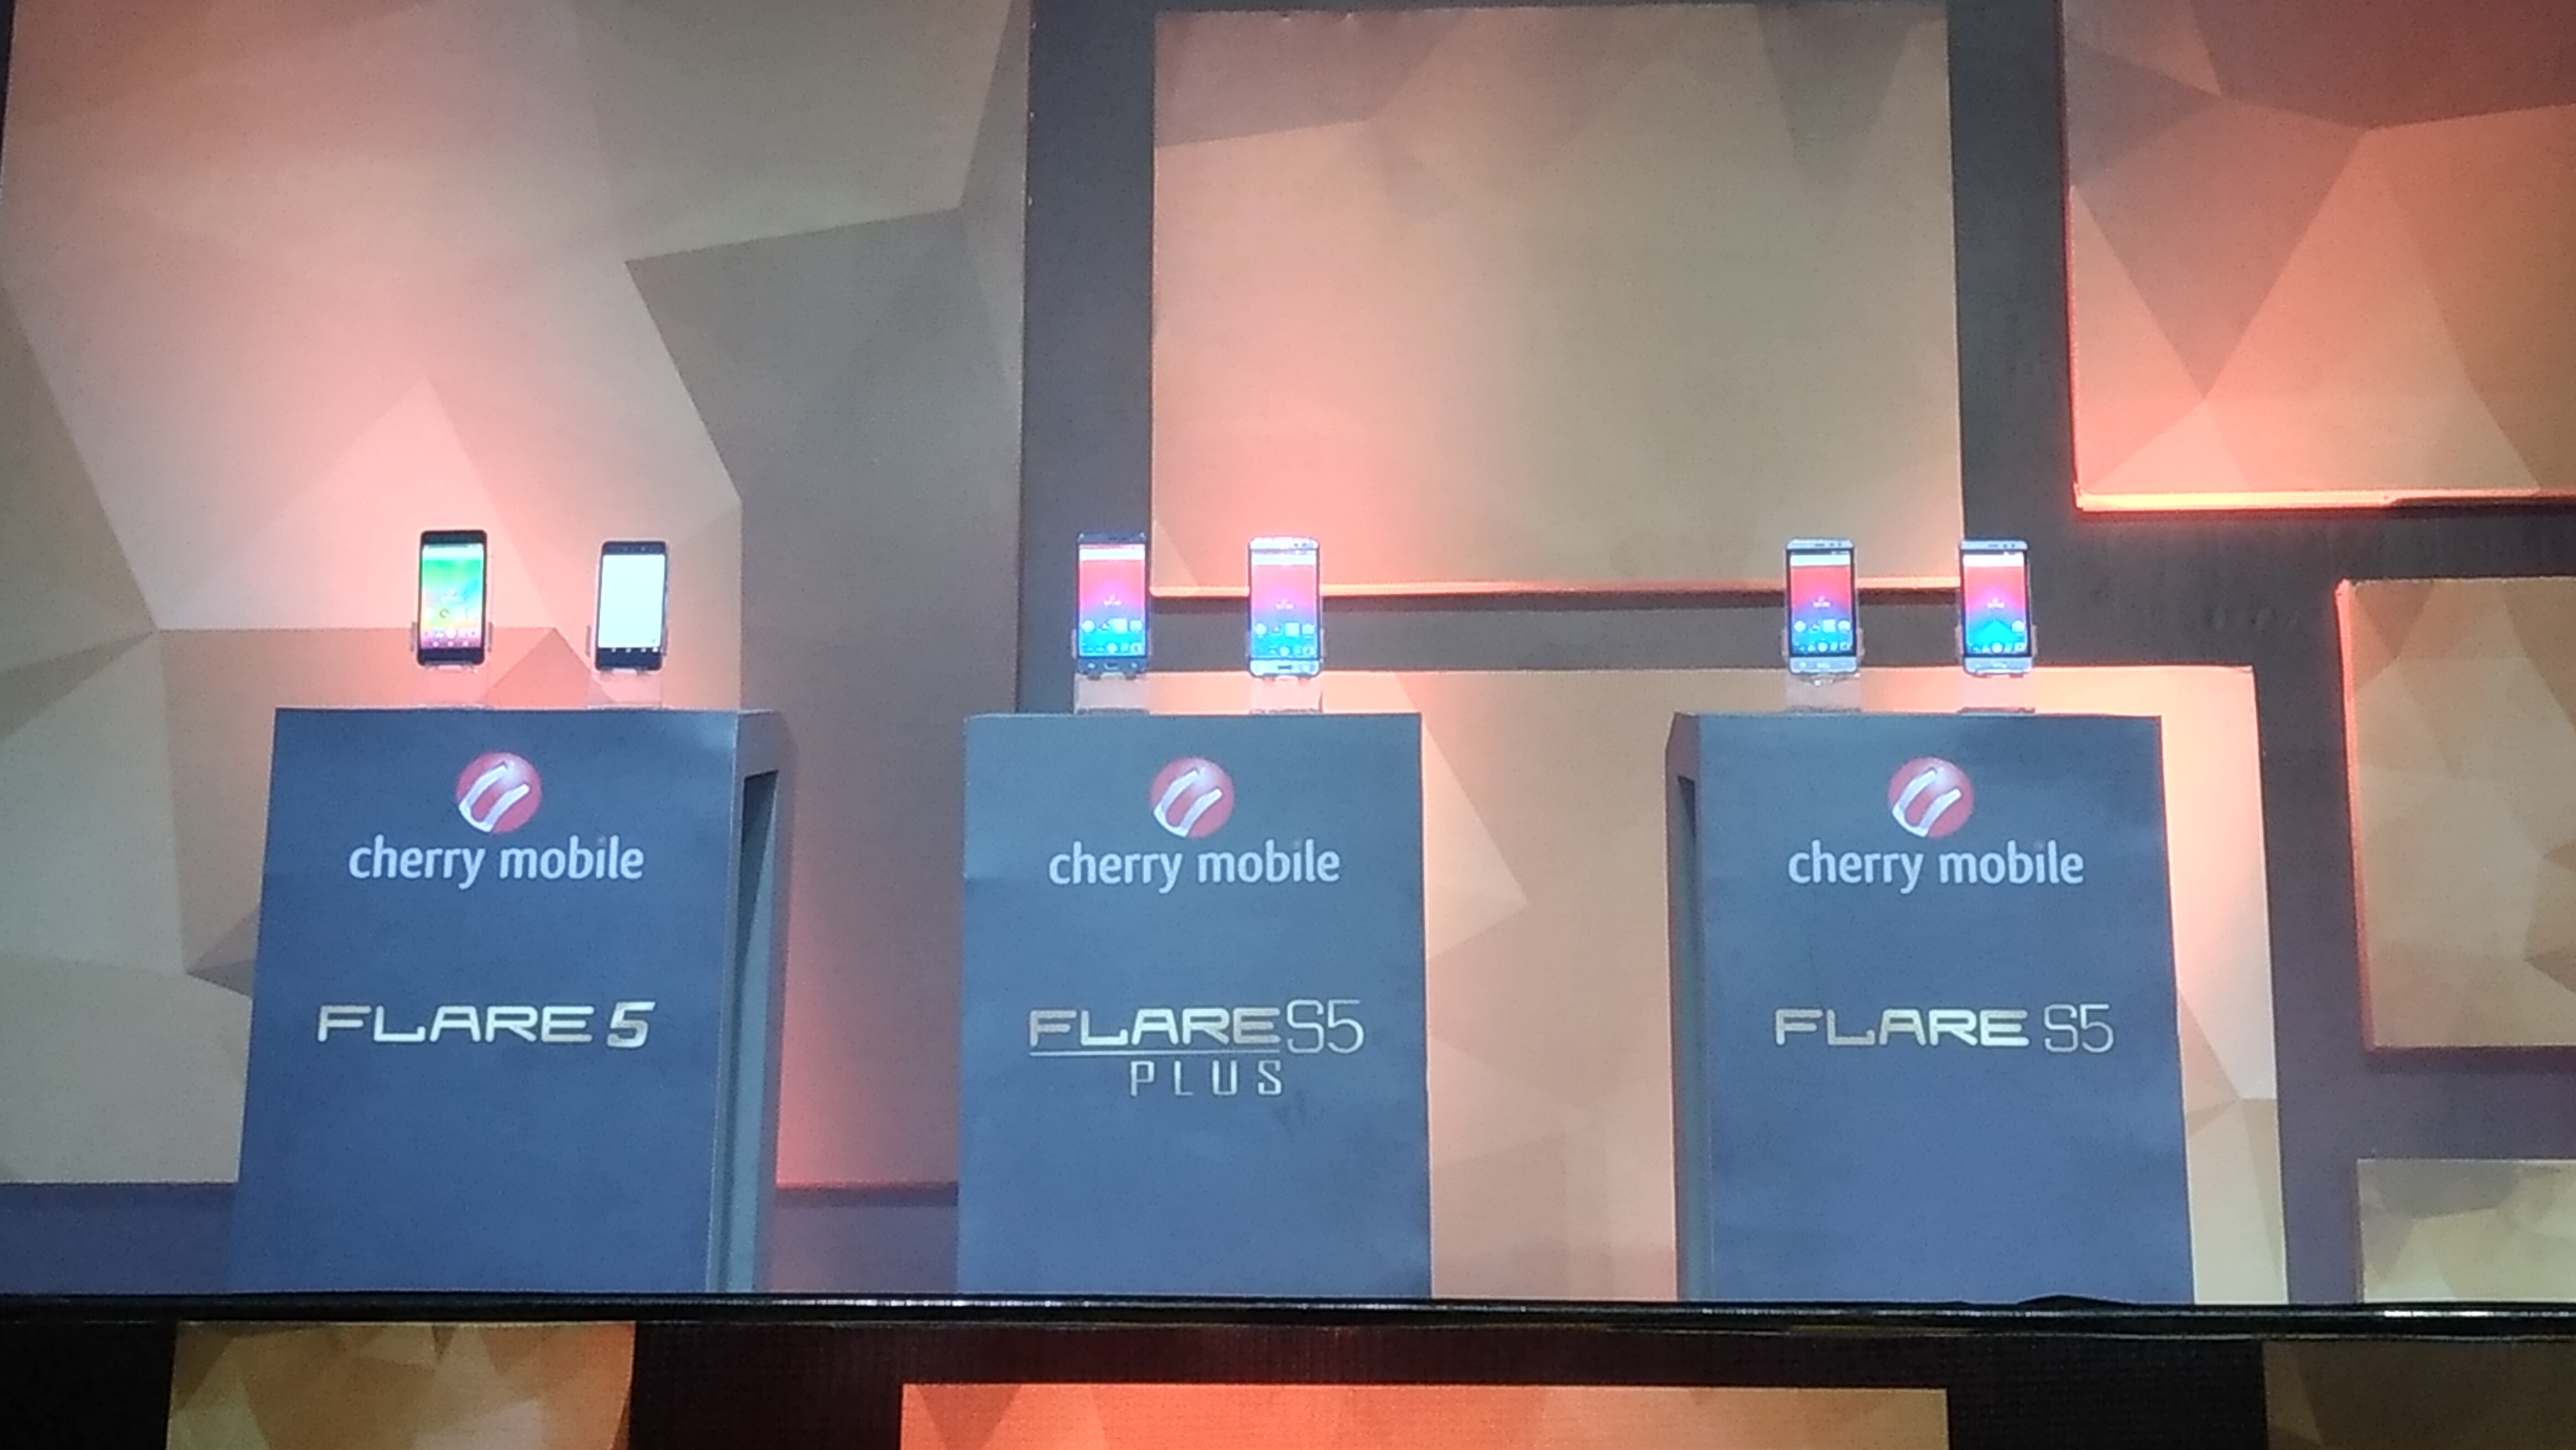 P 20161017 203334 vHDR Auto - Cherry Mobile Flare Premium Series Launch (Event Highlights)